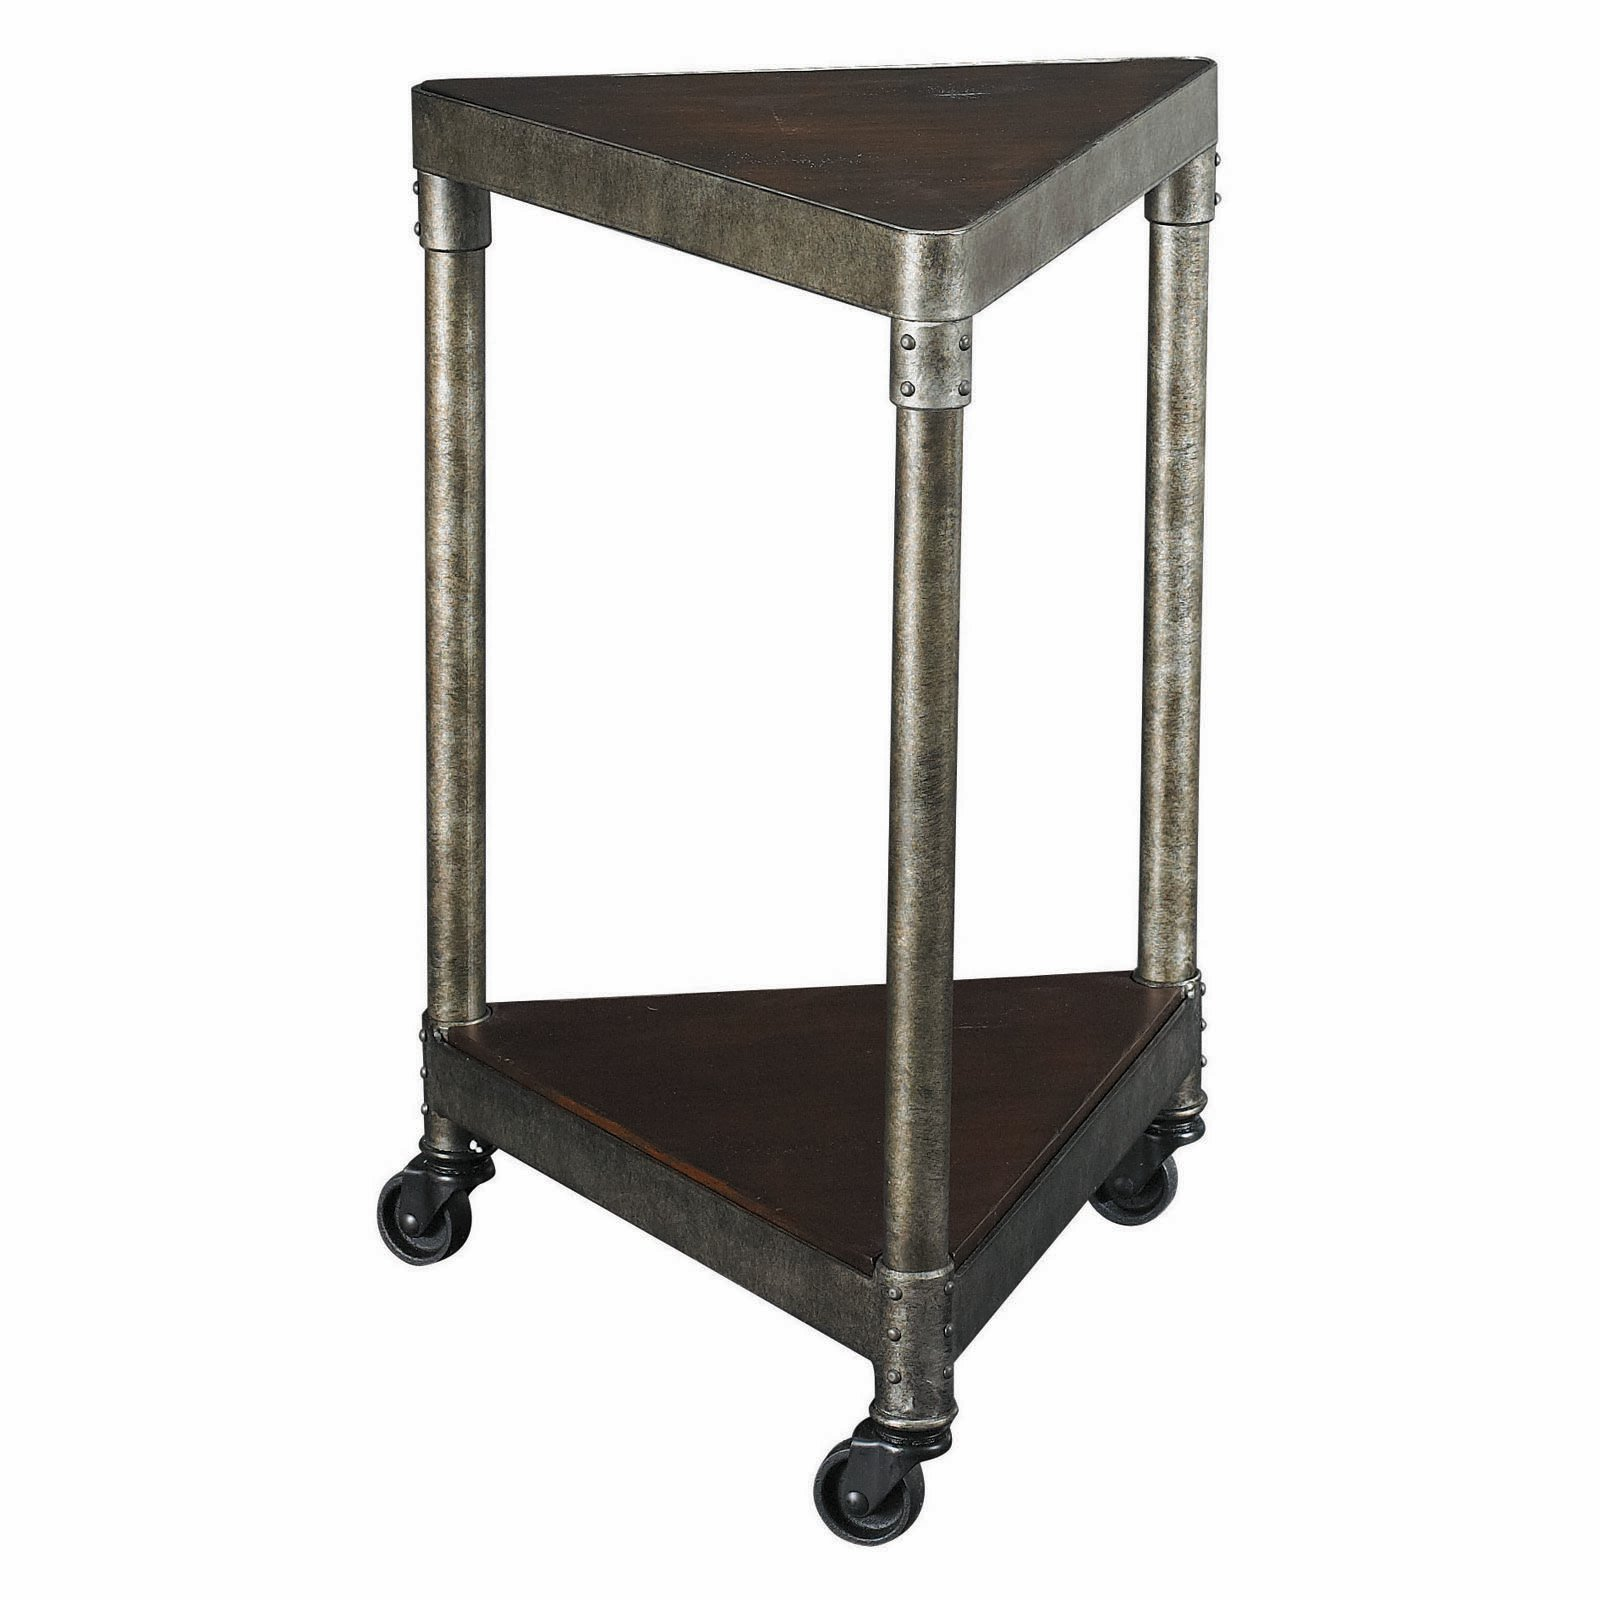 small corner accent table with drawer aruza furniture masculine triangle wooden and metal materials design wheel ideas awesome using not for restaurant lamps battery operated